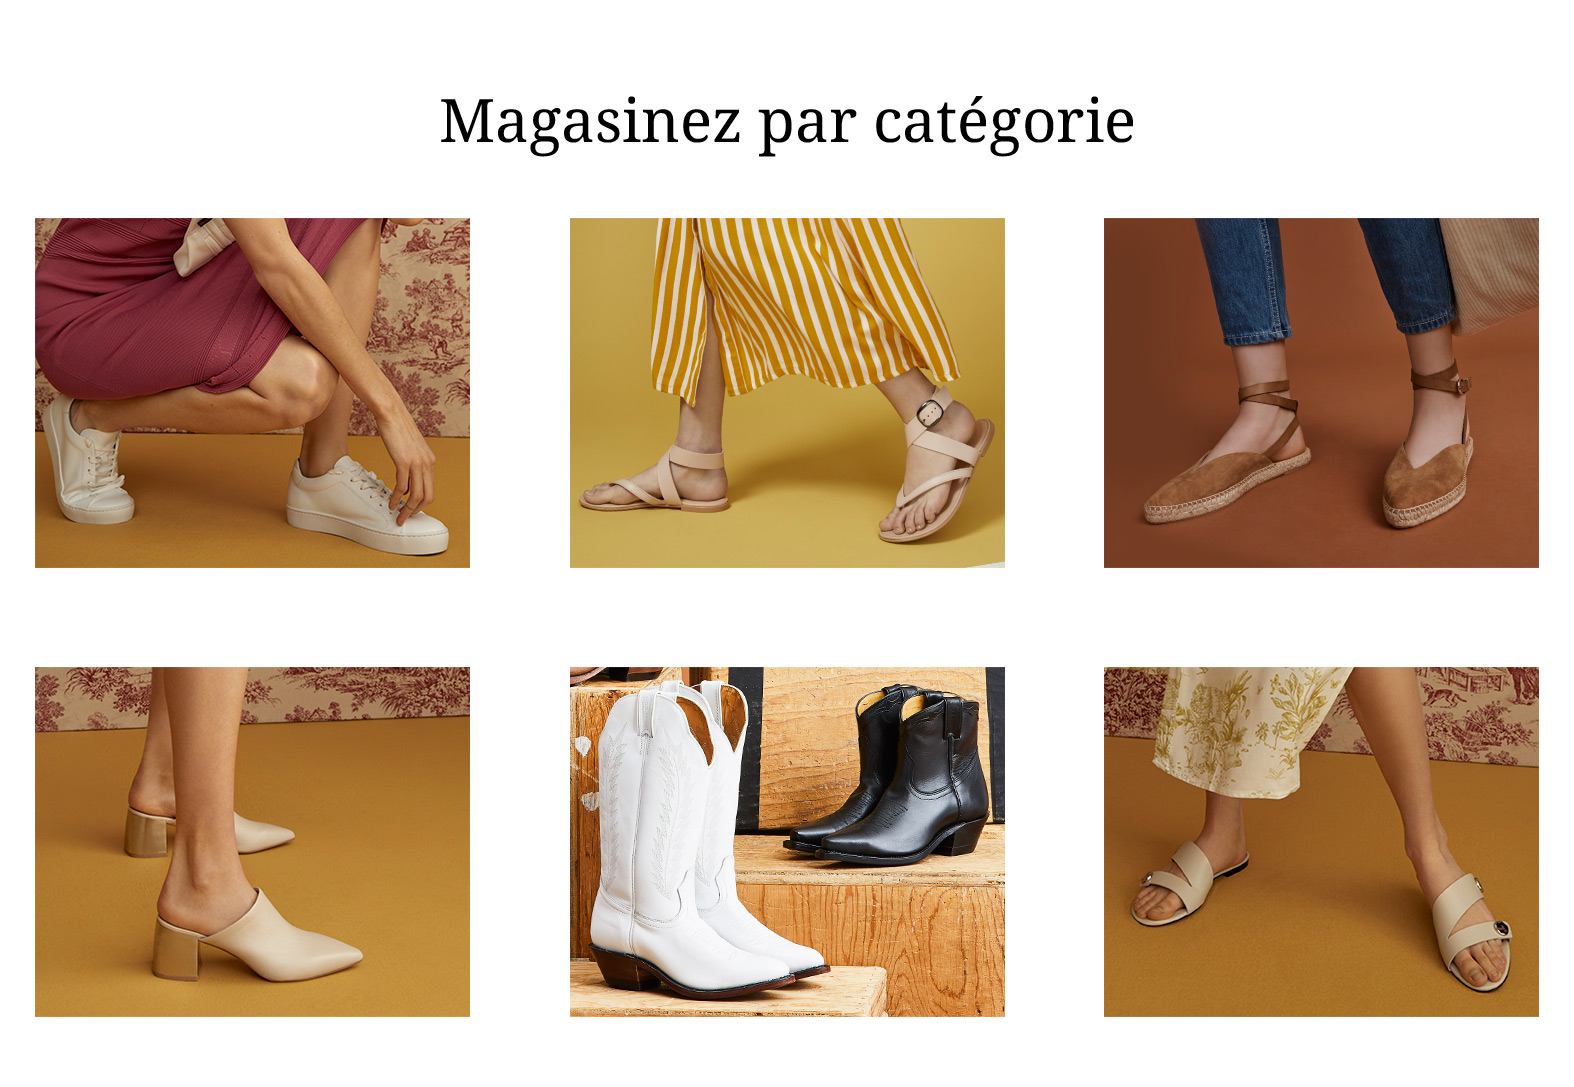 D-MS-03-P19-CHAUSSURESFEMME-Categories.psd